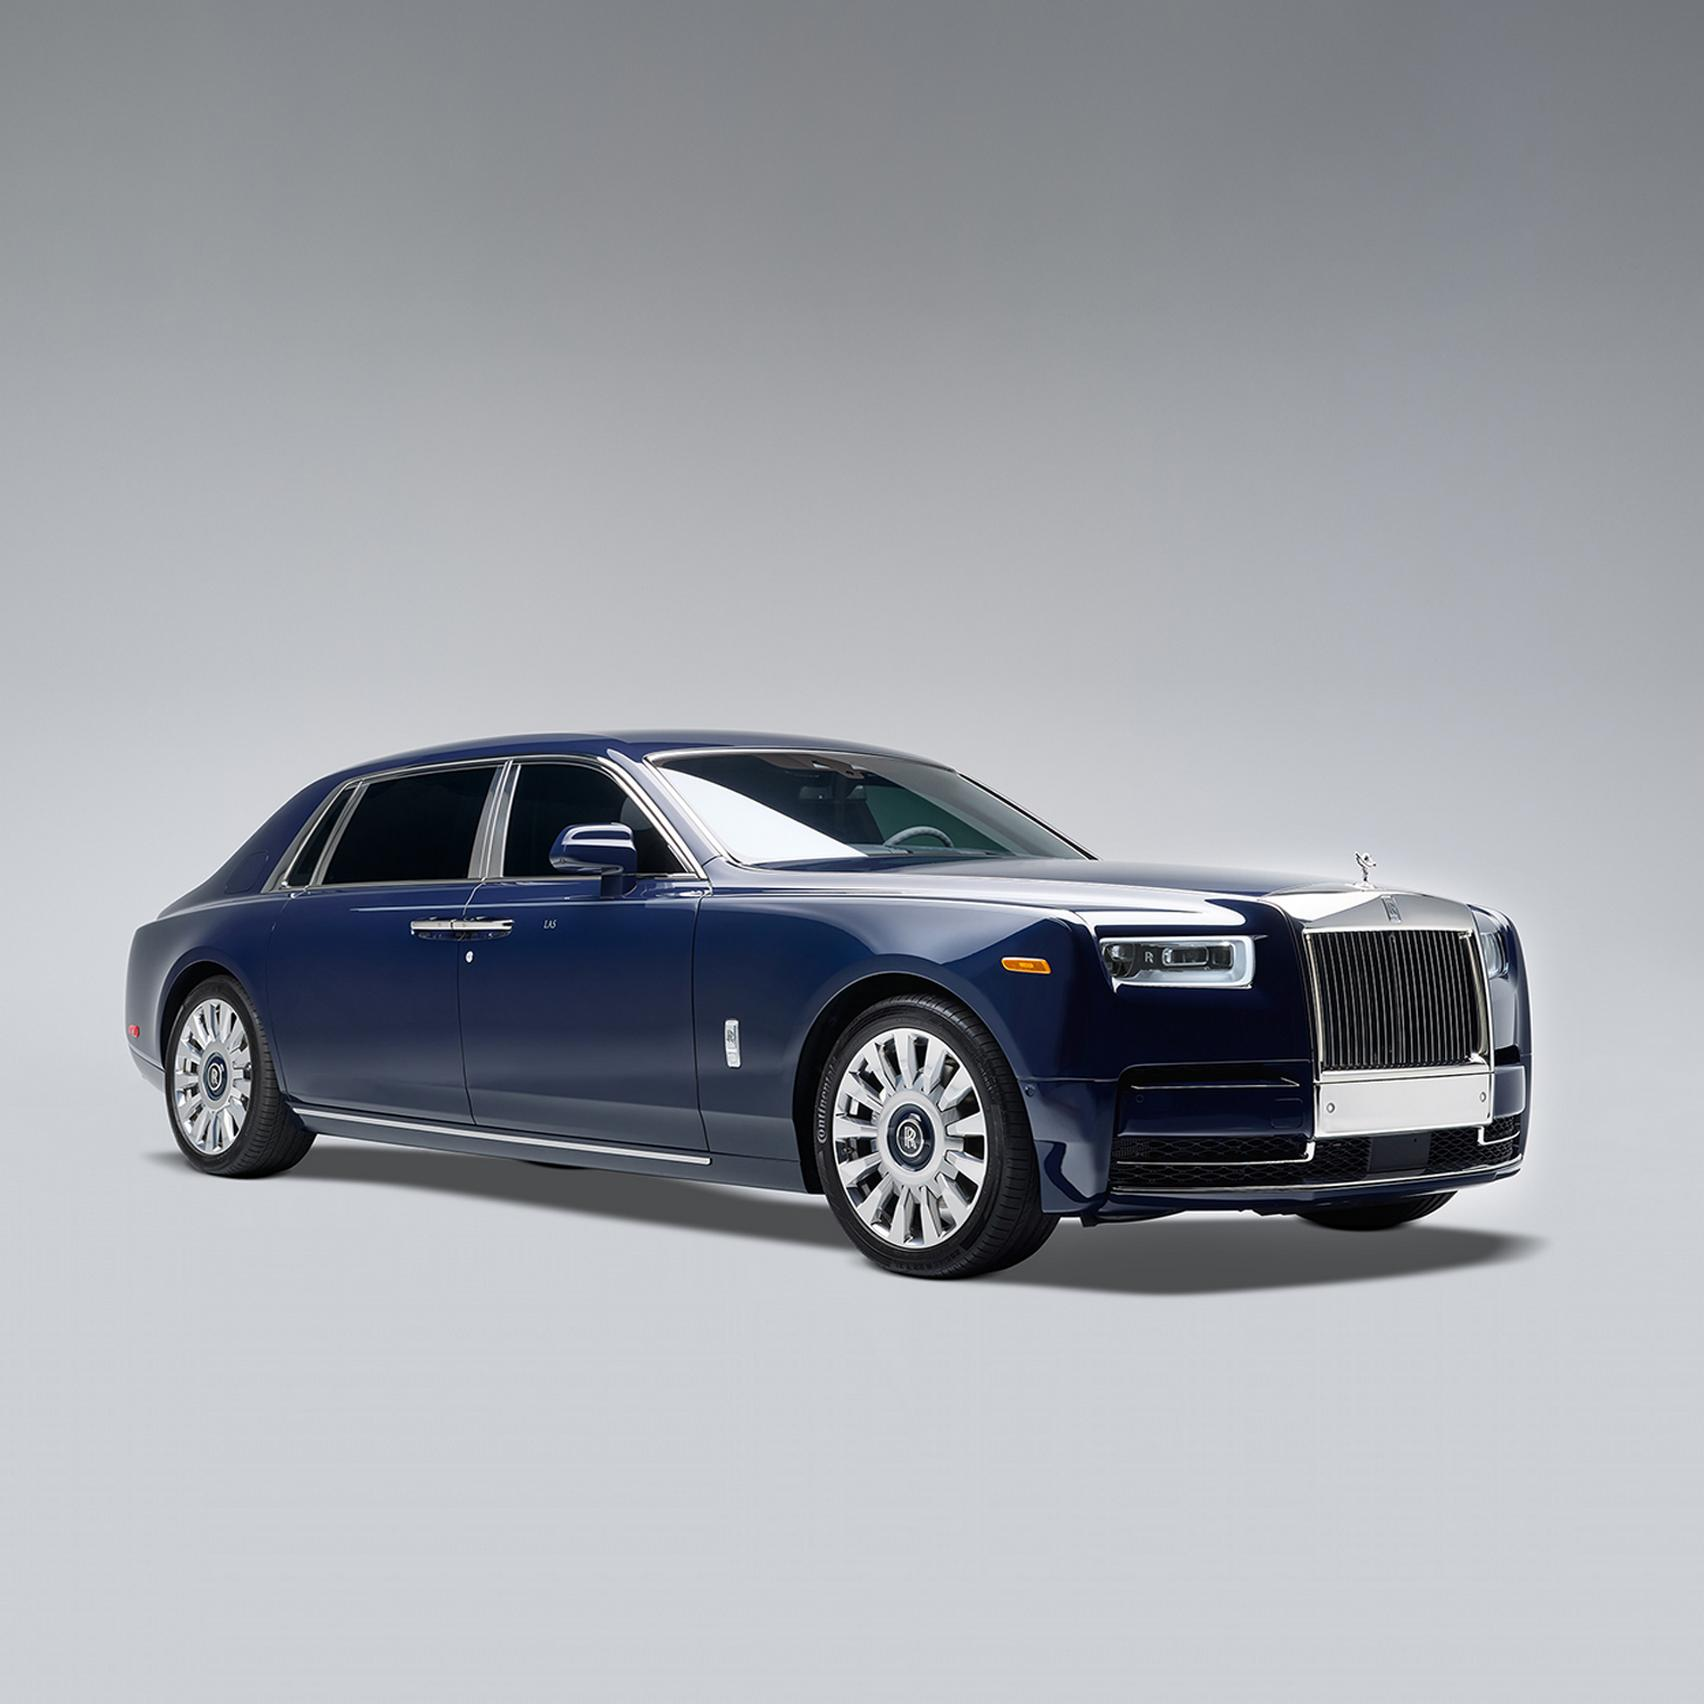 Rolls-Royce Phantom blue